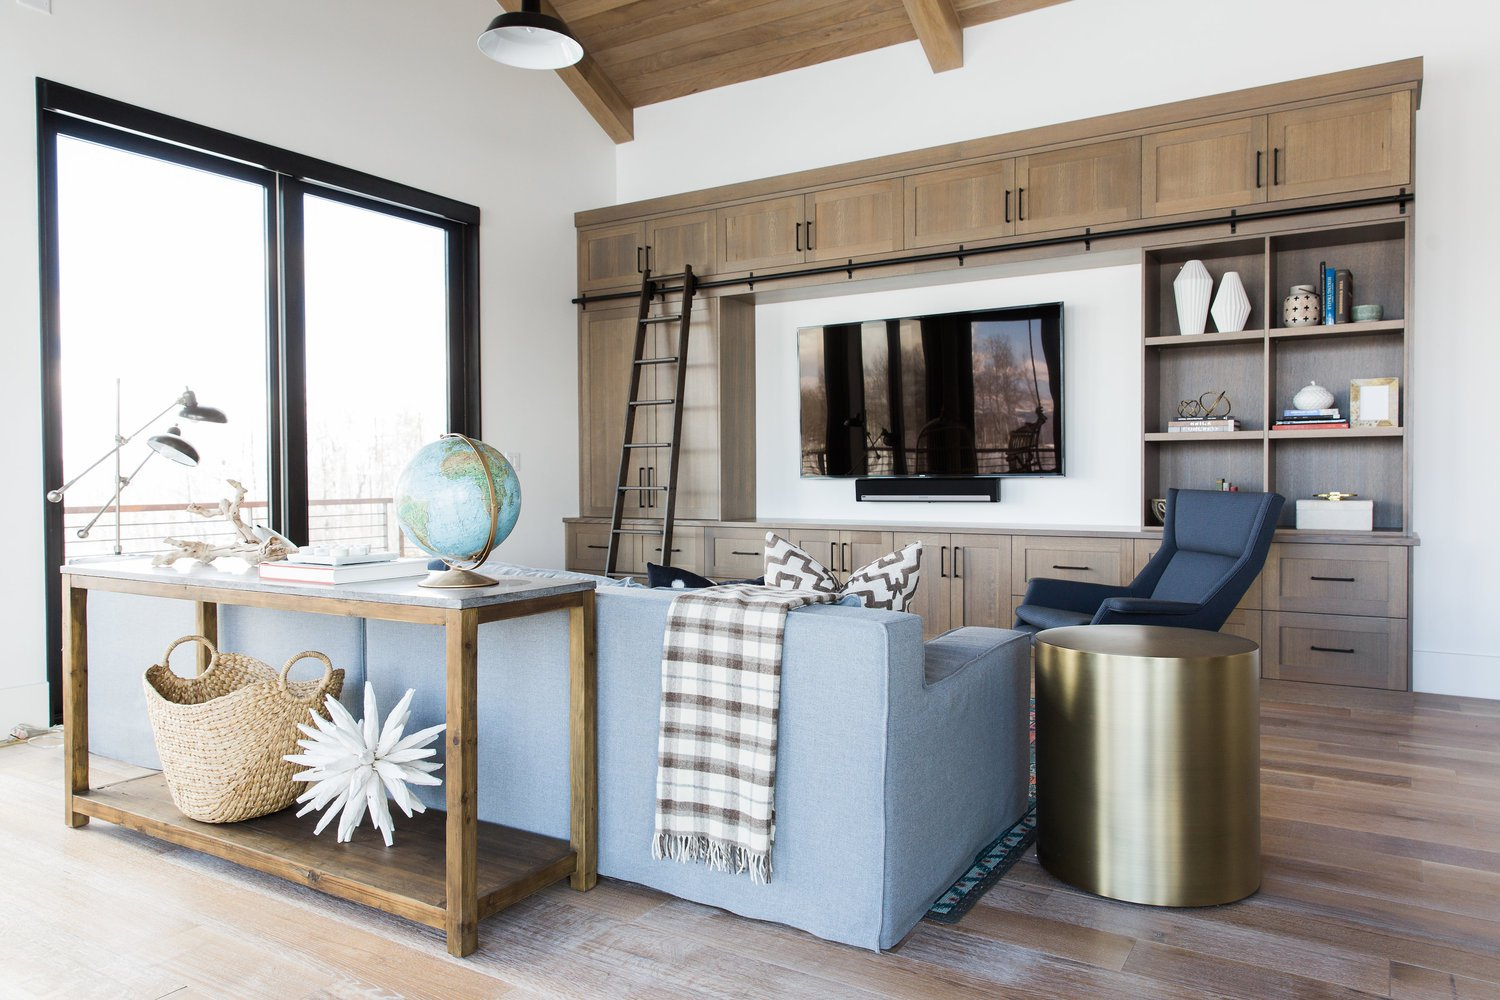 Simple Living Room Ideas To Turn Your House Into A Home Simple Living Room Simple Living Room Ideas To Turn Your House Into A Home Simple Living Room Ideas To Turn Your House Into A Home5